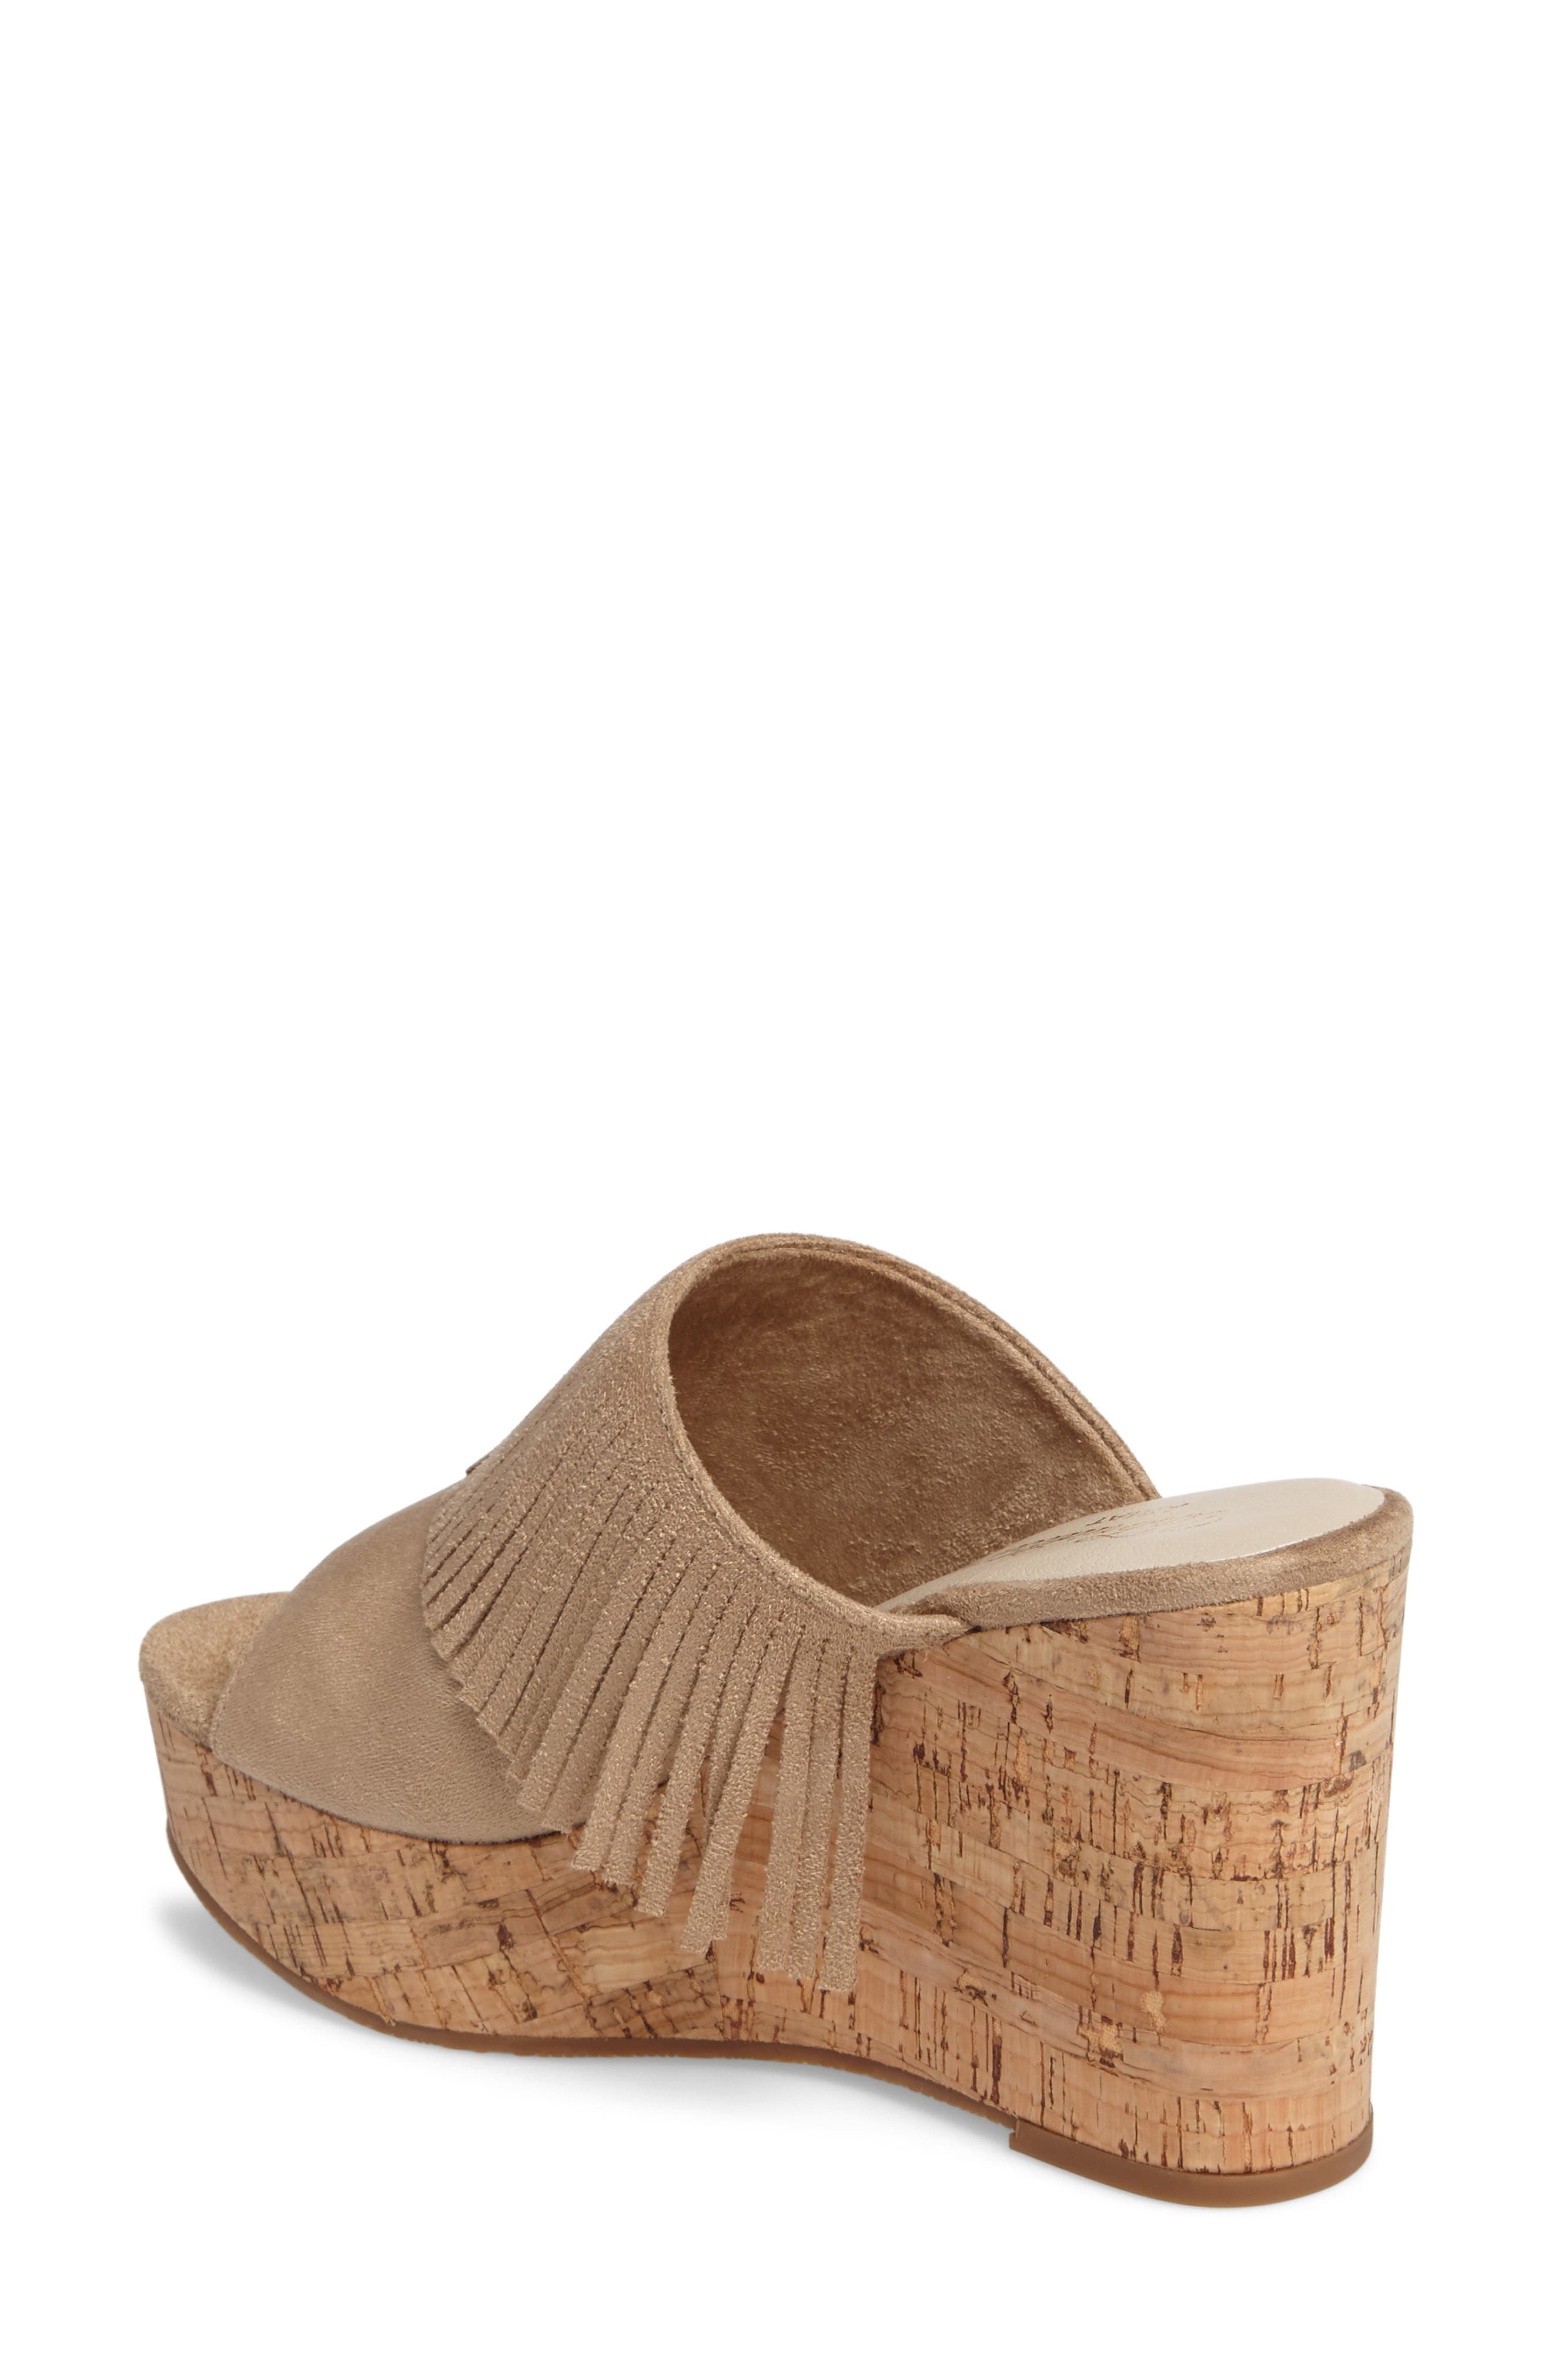 ARIAT, Unbridled Leigh Fringe Mule, Alternate thumbnail 2, color, SAND FABRIC